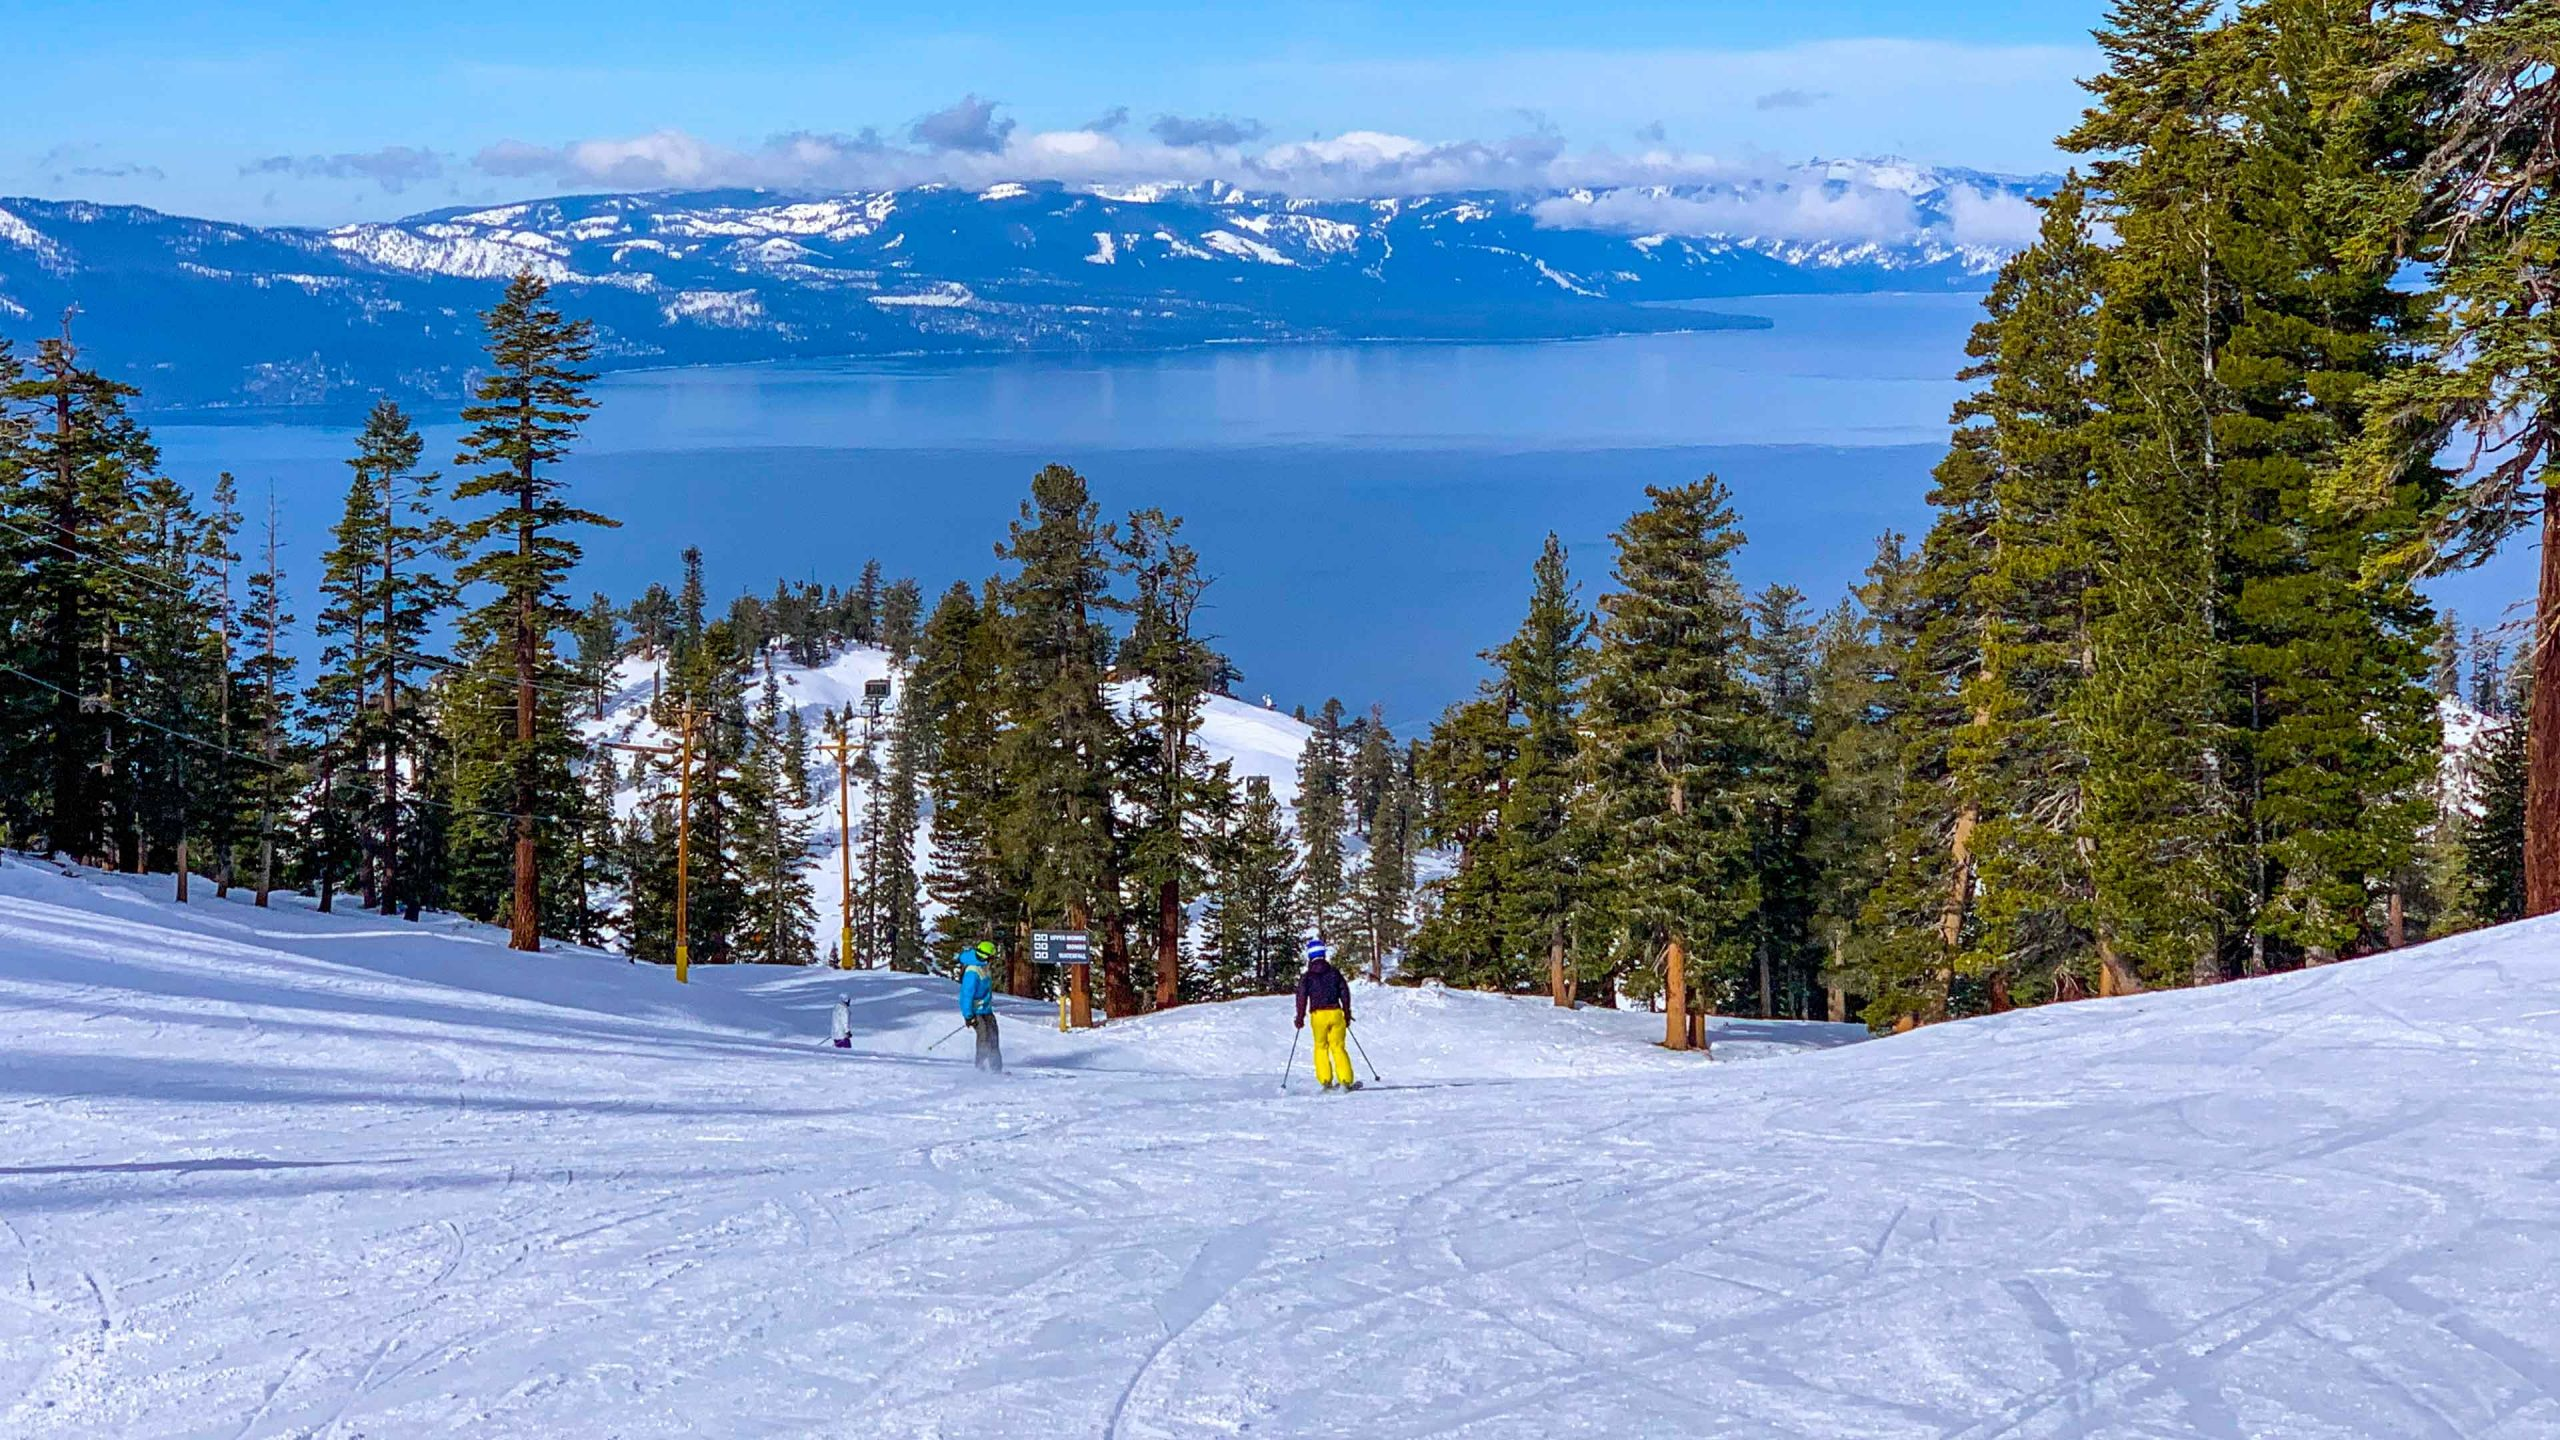 View downhill at ski resort with Lake Tahoe in background.